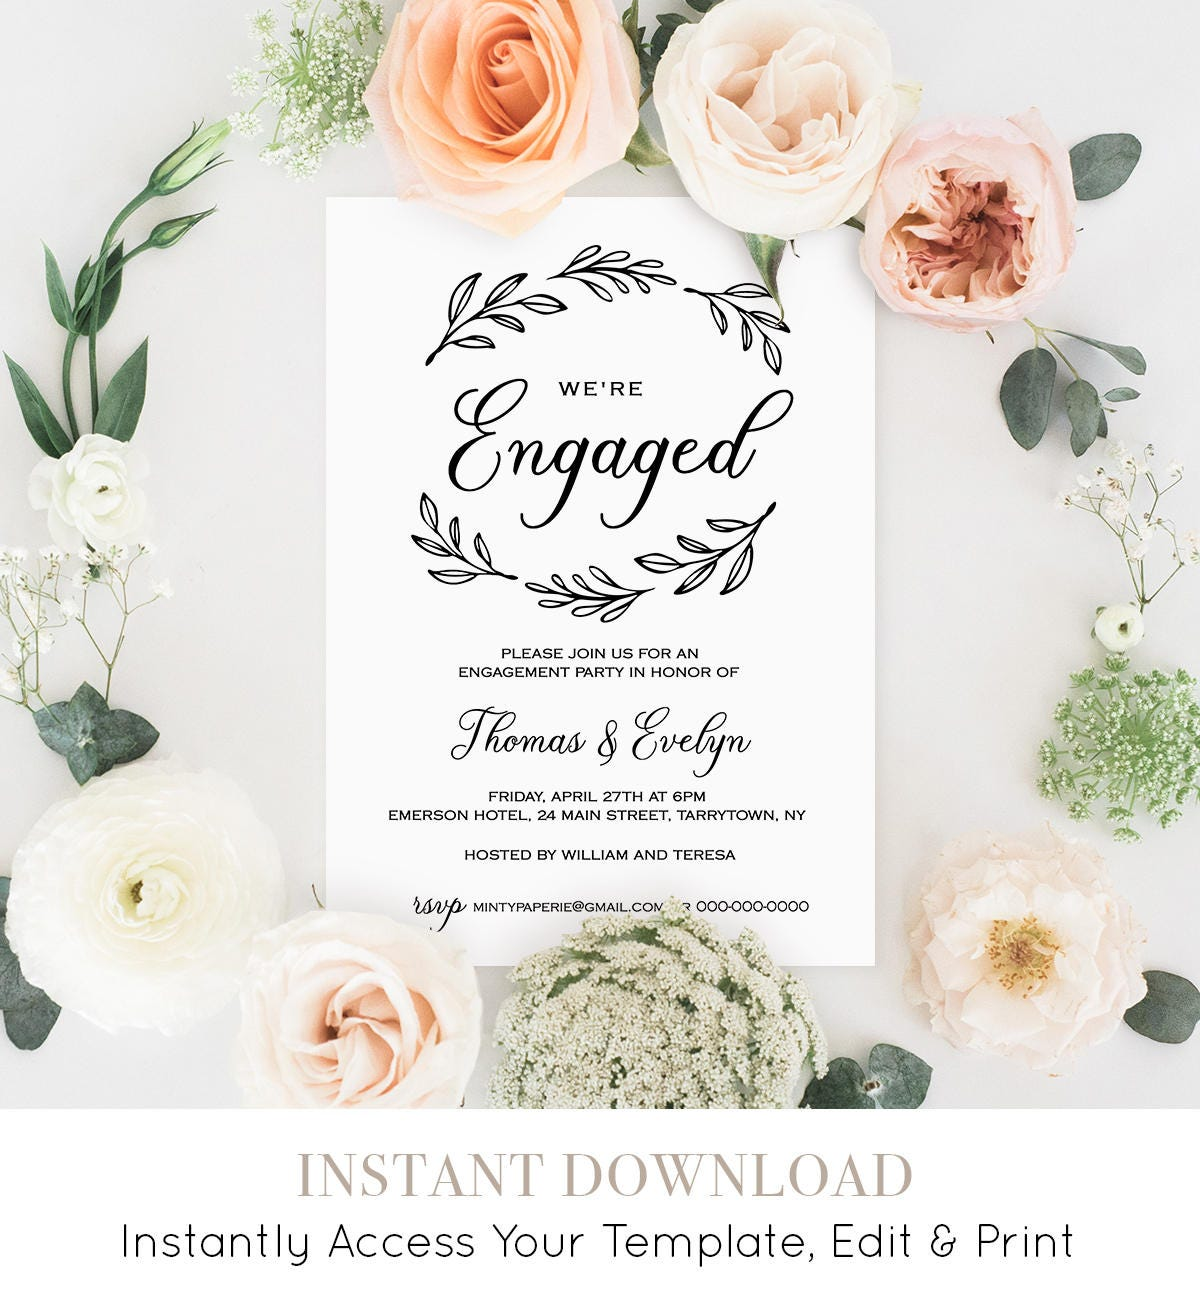 Engagement Invitation Template Printable Wedding Announcement Were Engaged Fully Editable Instant Download DIY 027 108EP